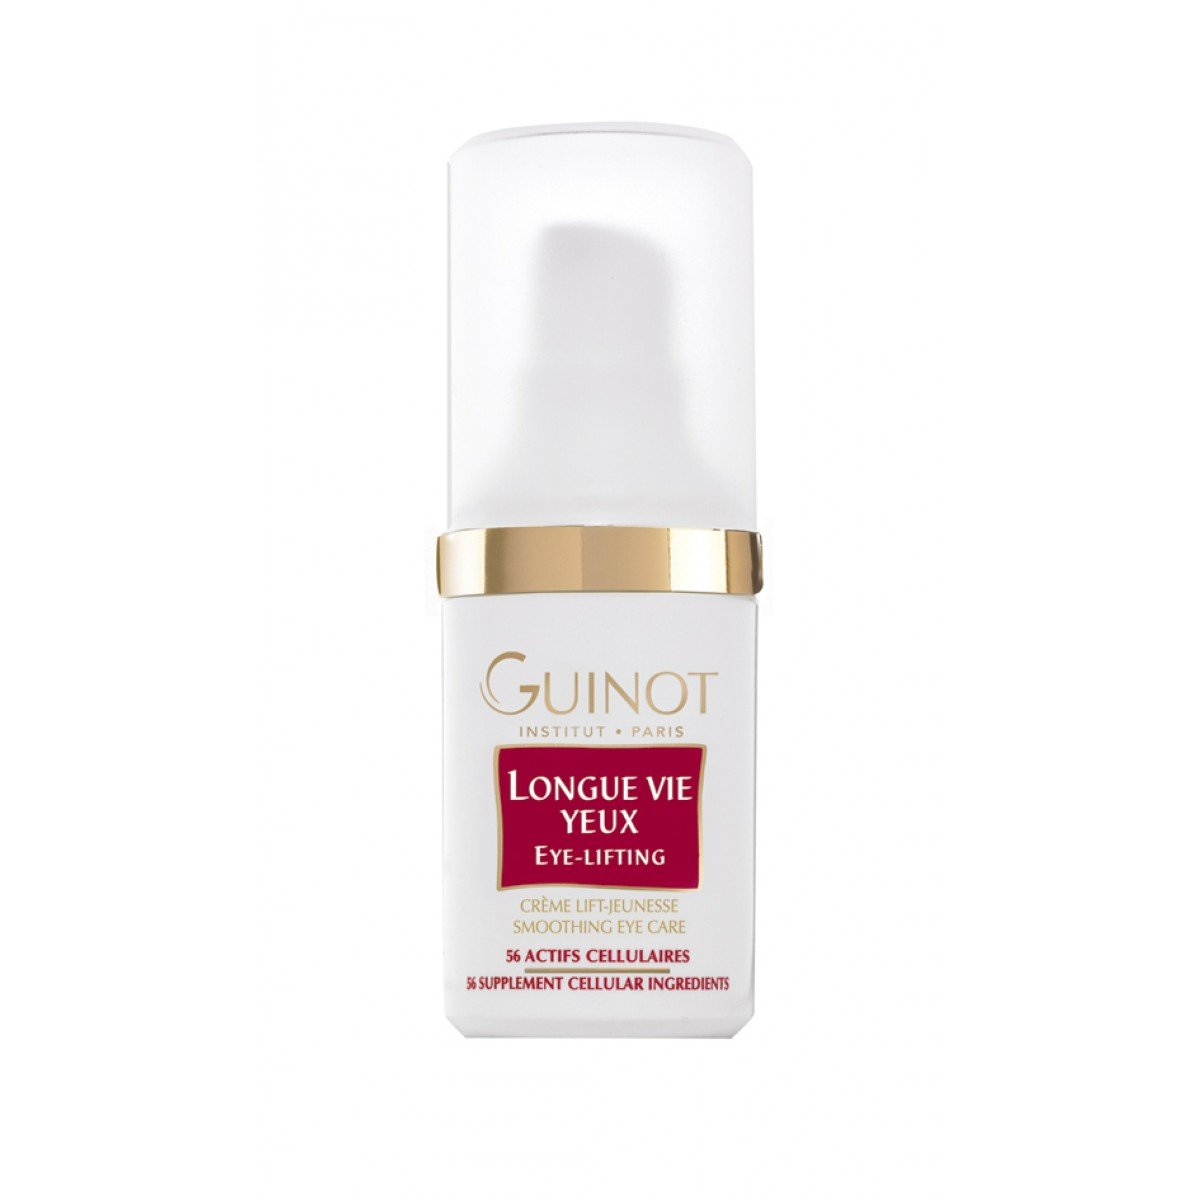 New Guinot Longue Vie Yeux Eye Lifting Cream For Eye Wrinkles/lines 15ml by Guinot